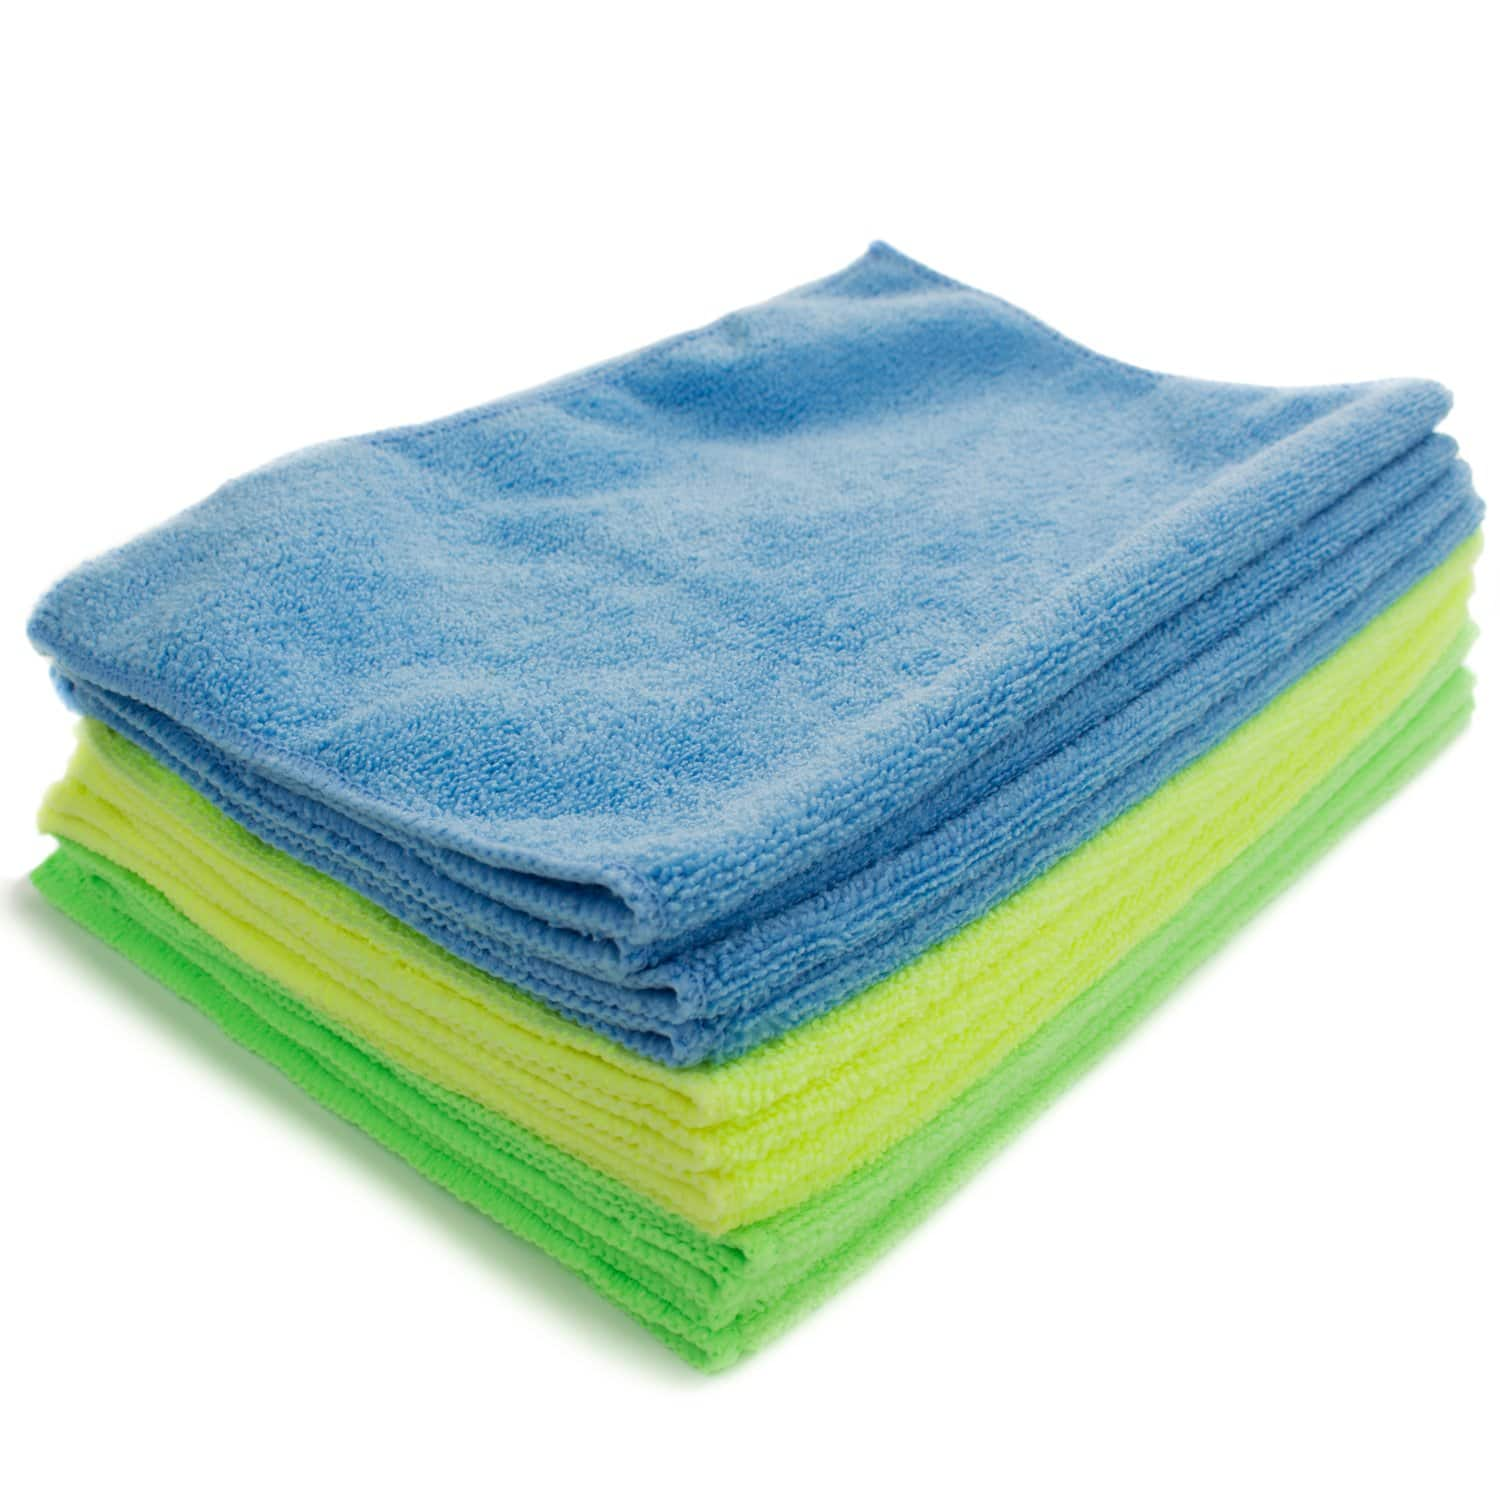 12-Pack Zwipes Microfiber Towel Cleaning Cloths